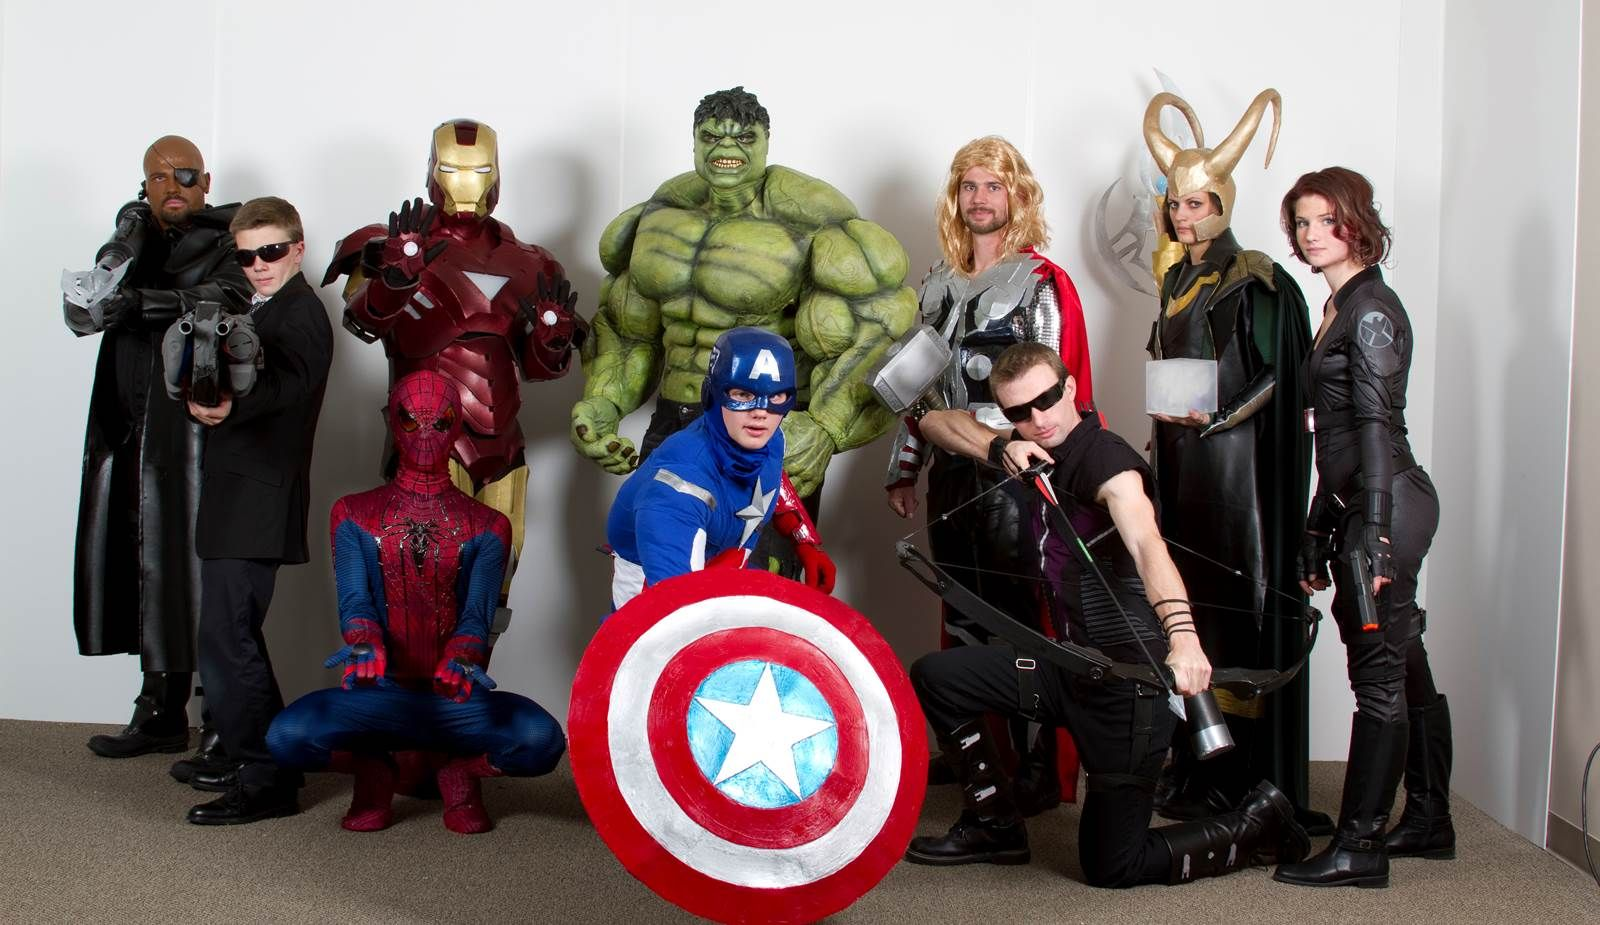 8 Group Halloween Costumes To Try This Year Avengers Costumes Group Halloween Costumes Marvel Halloween Costumes